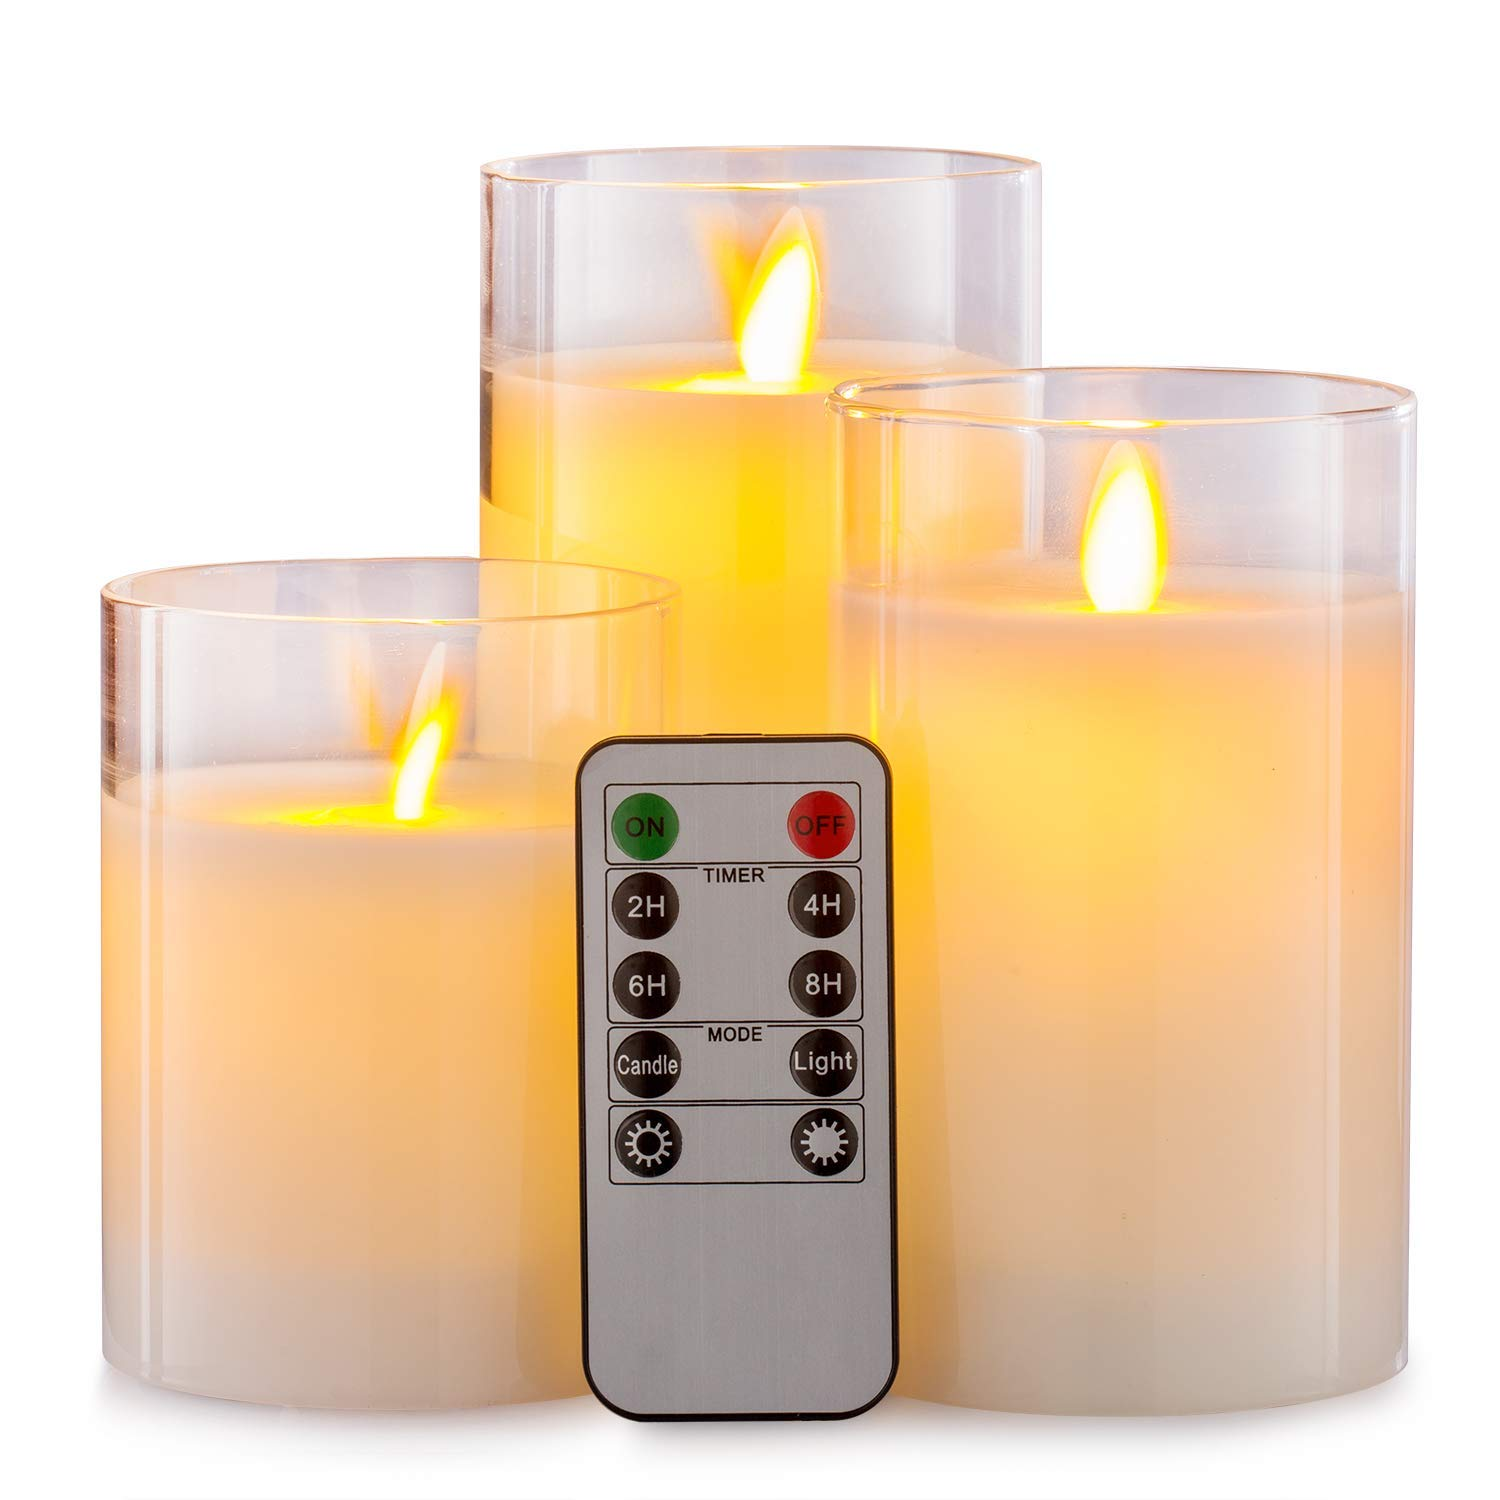 Aku Tonpa Flameless Candles Battery Operated Pillar Real Wax Flickering Moving Wick LED Glass Candle Sets with Remote Control Cycling 24 Hours Timer, 4'' 5'' 6'' Pack of 3